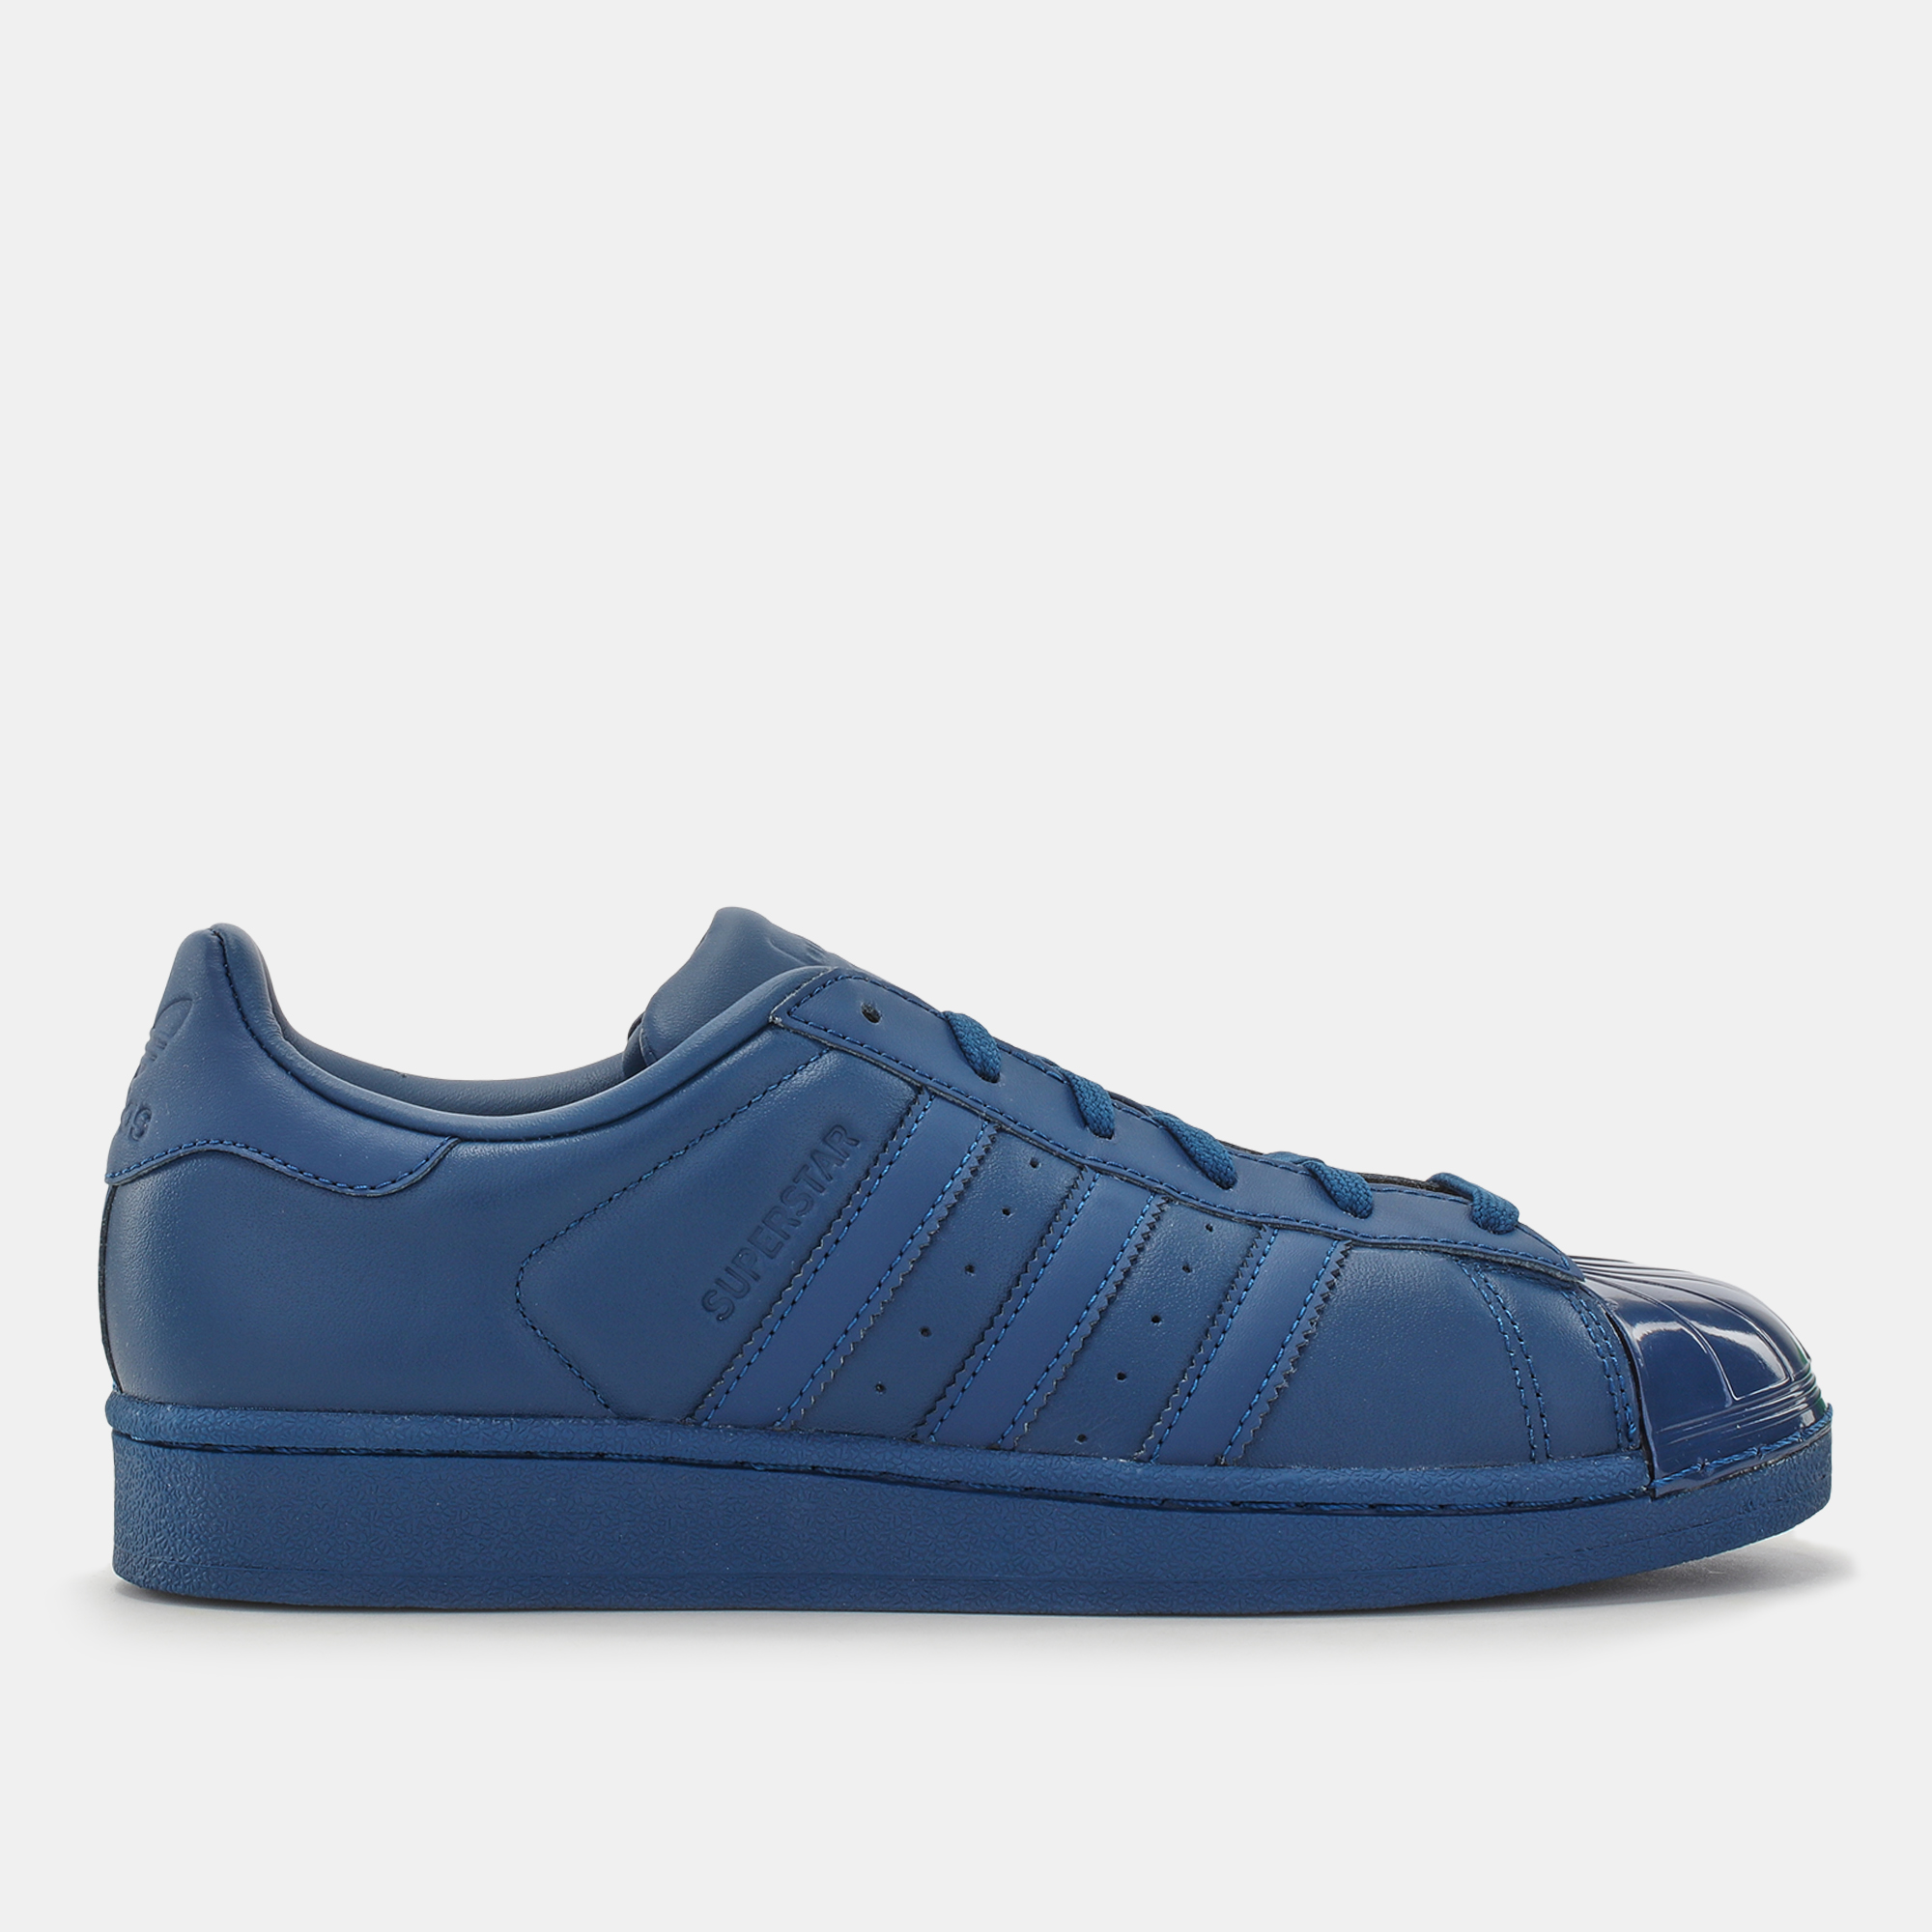 Womens Blue Adidas Glossy Superstar Shoe Toe For Shop By kPXuOZiT